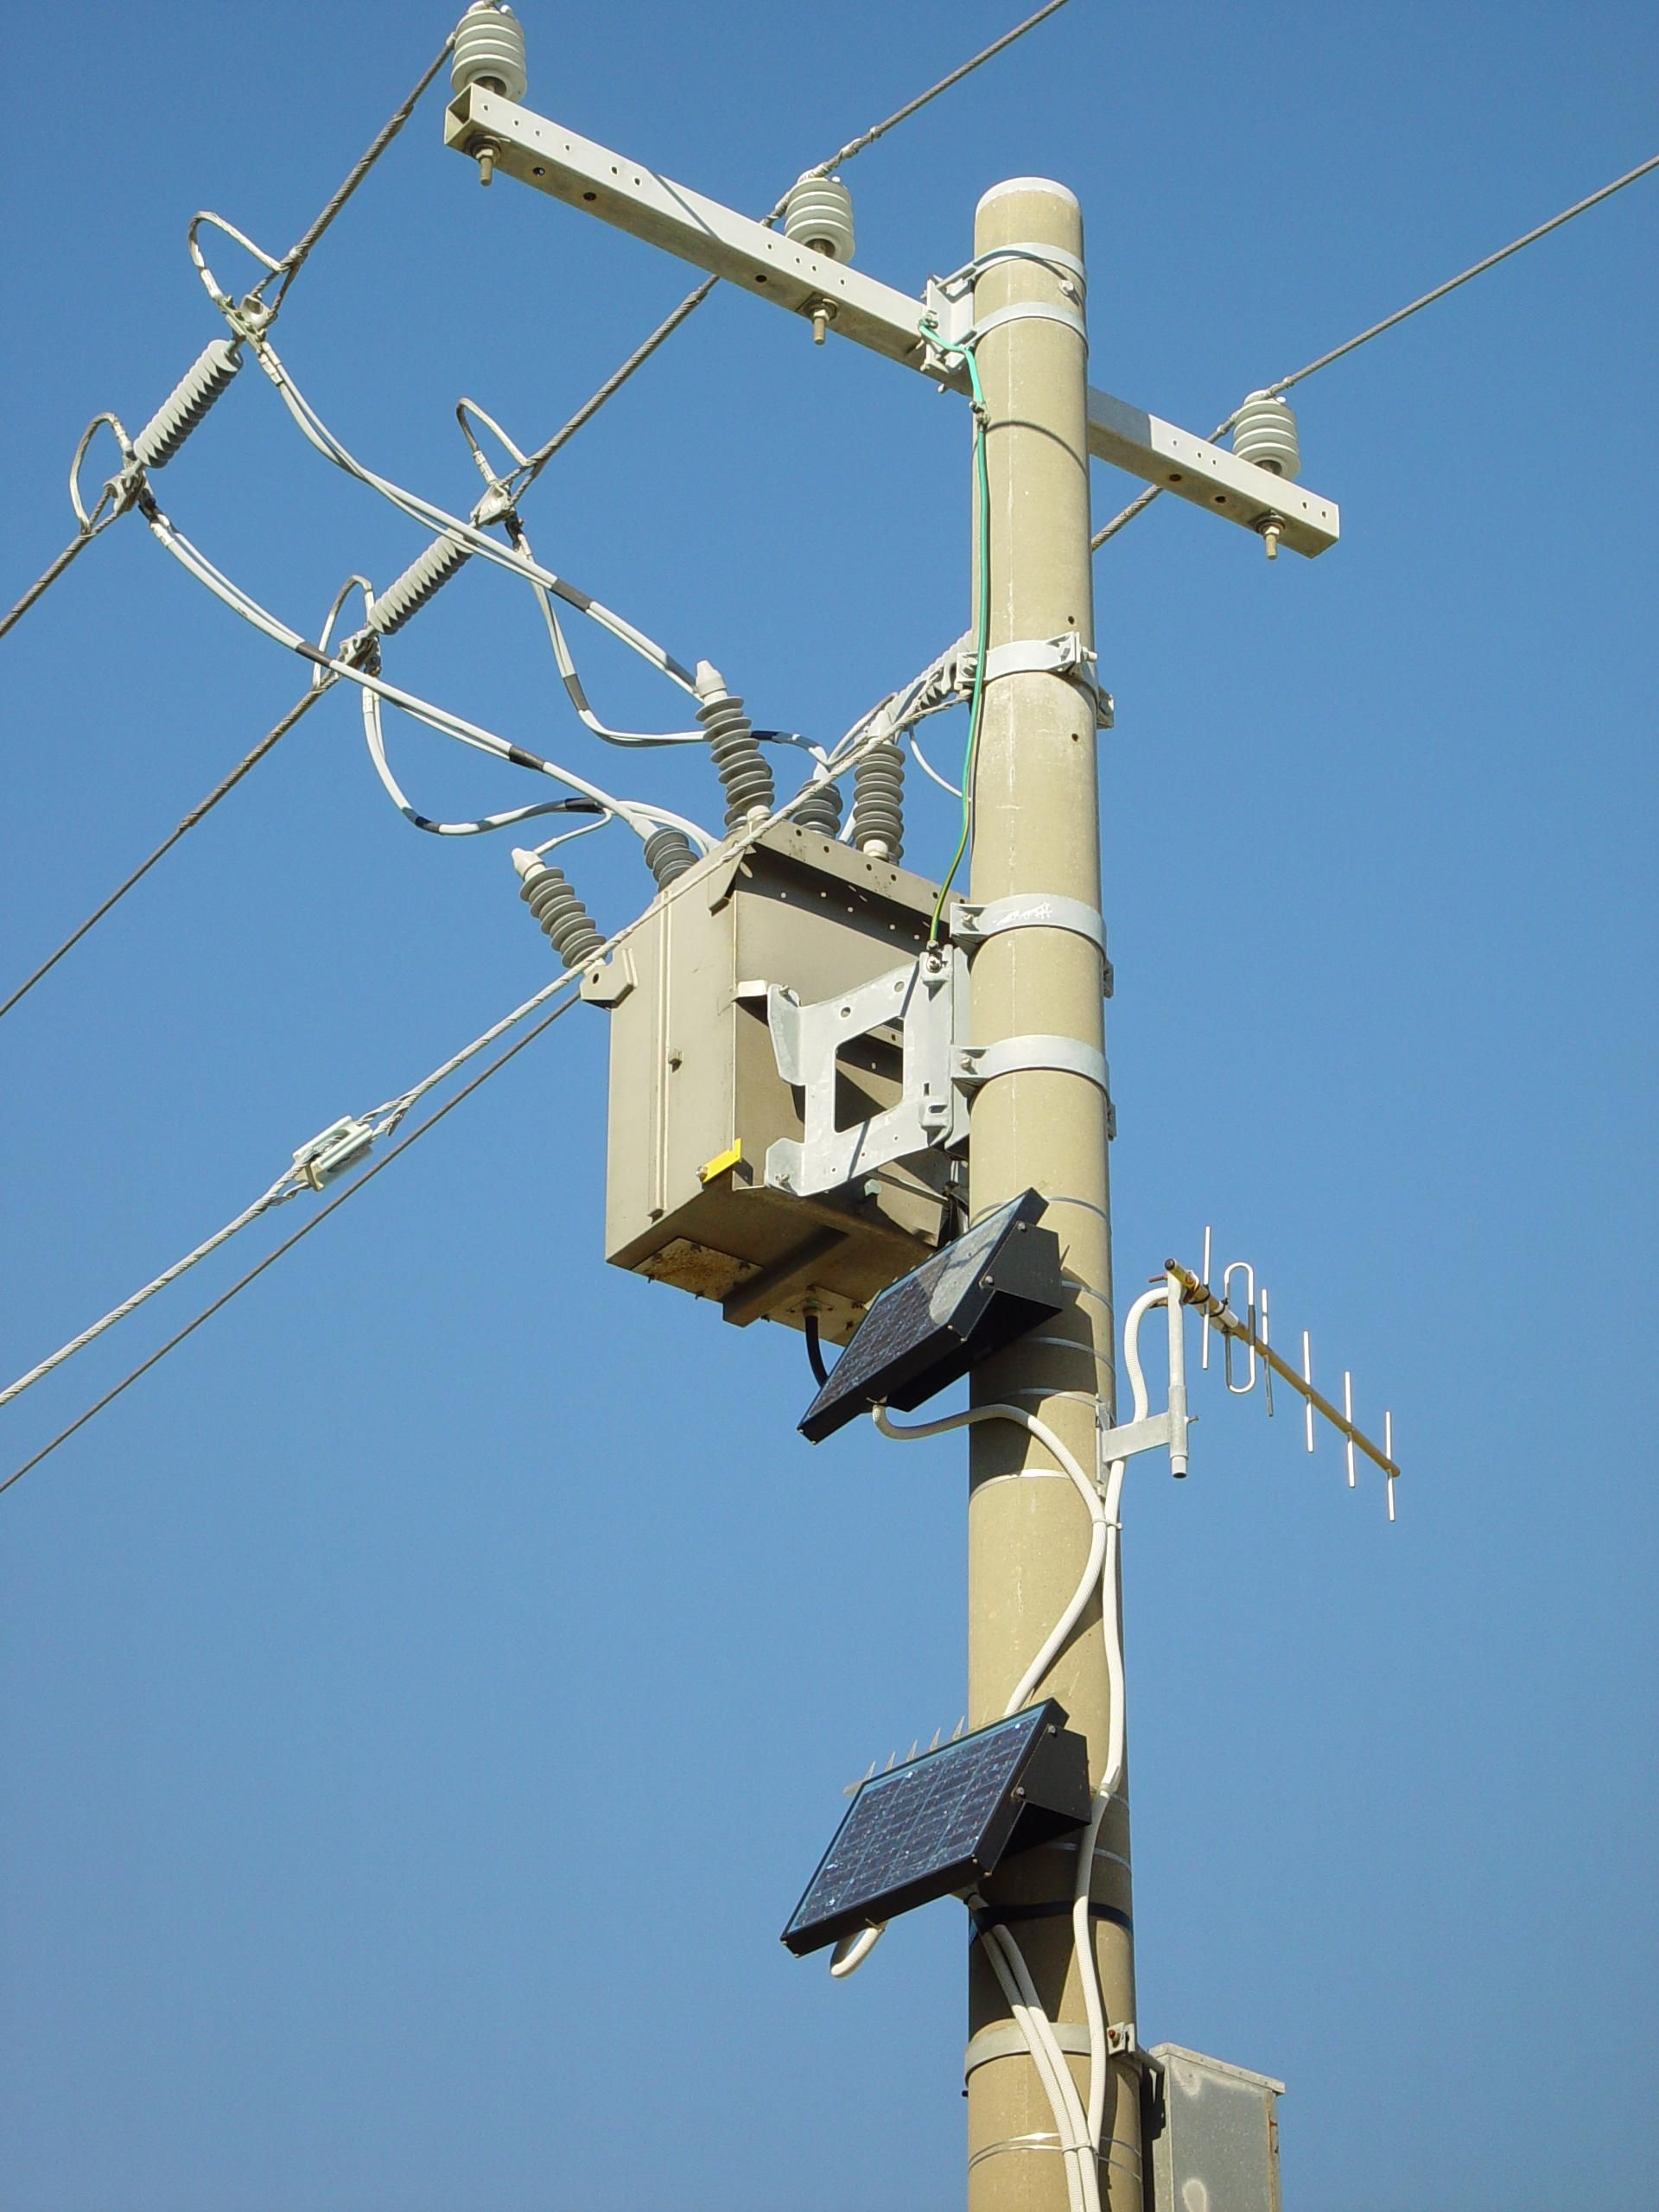 File:Busy power pole with solar panels.jpg - Wikimedia Commons